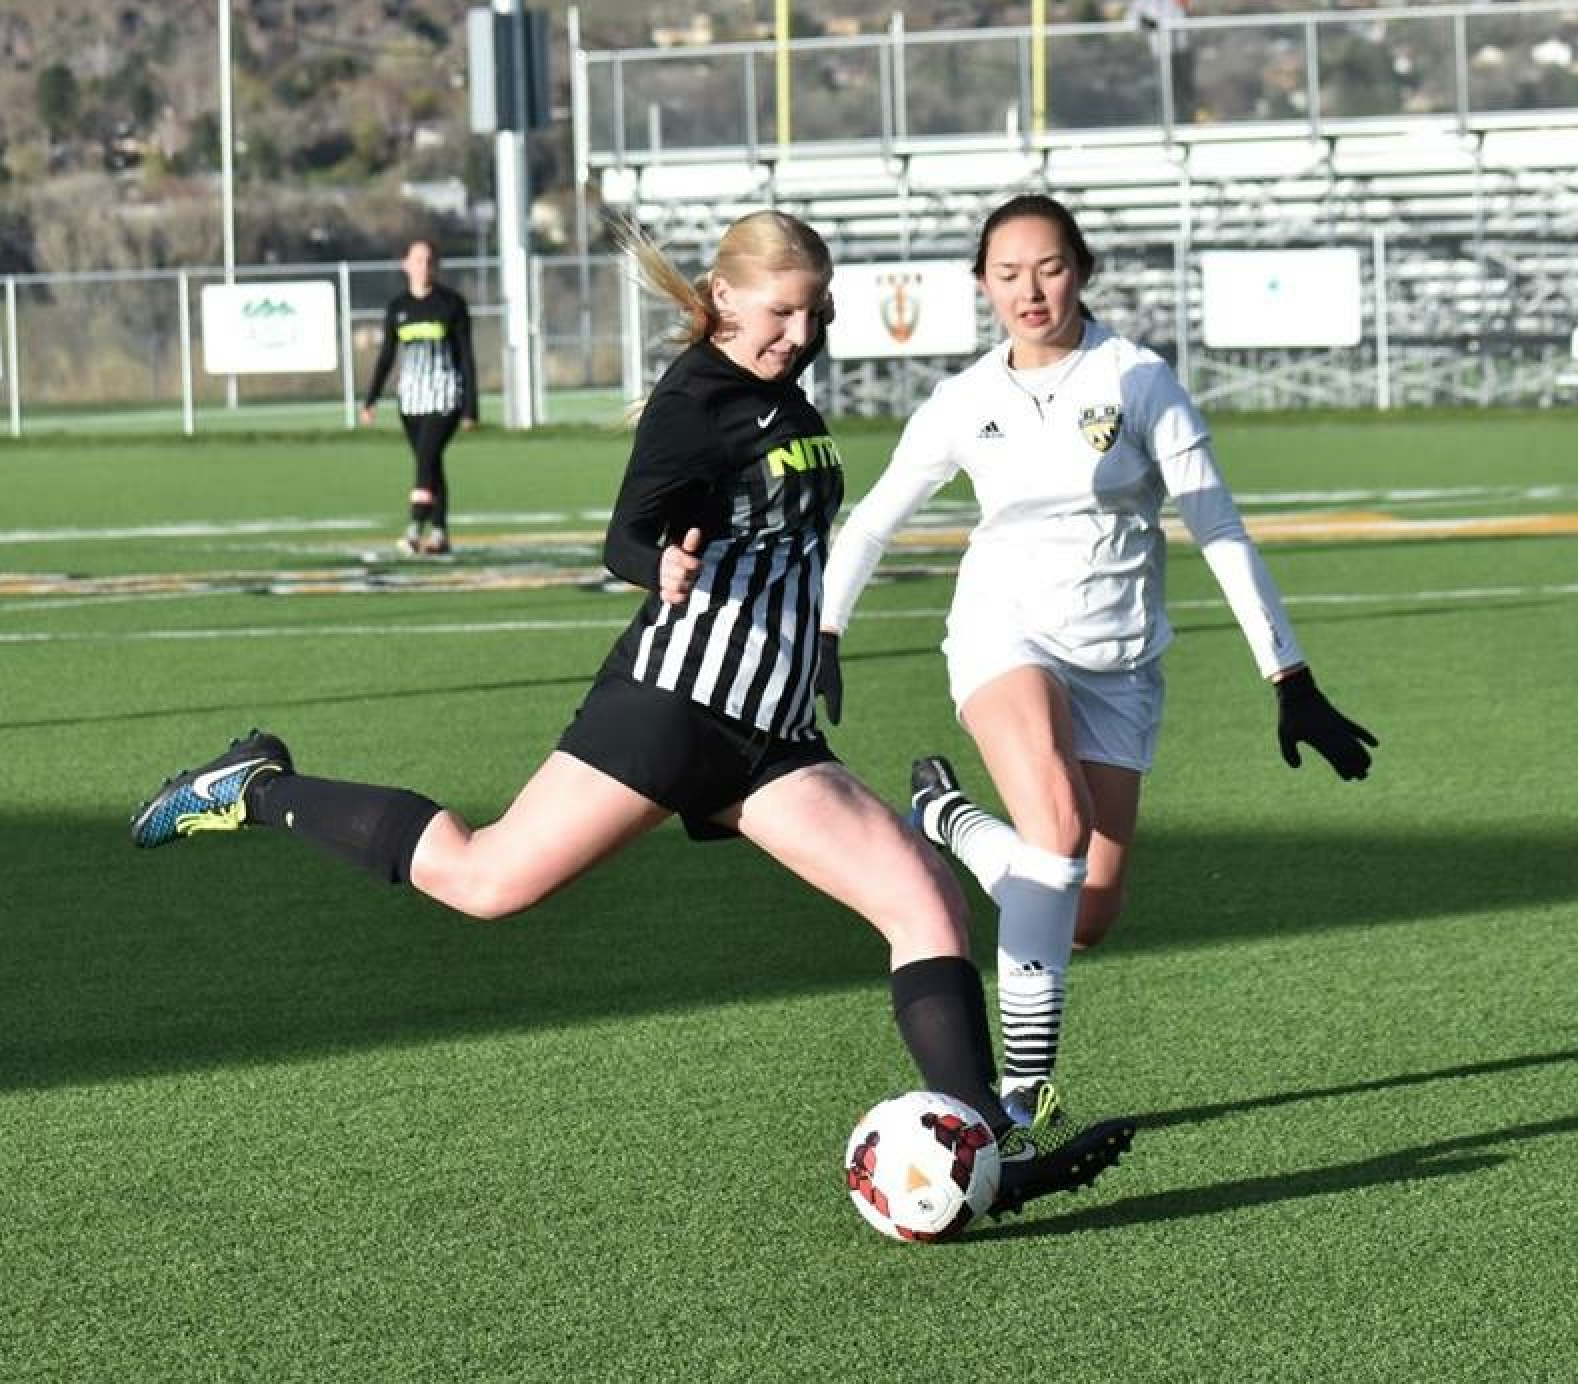 Western Wyo Women's Soccer: 2019 WWCC Recruit - Kloe Swallow